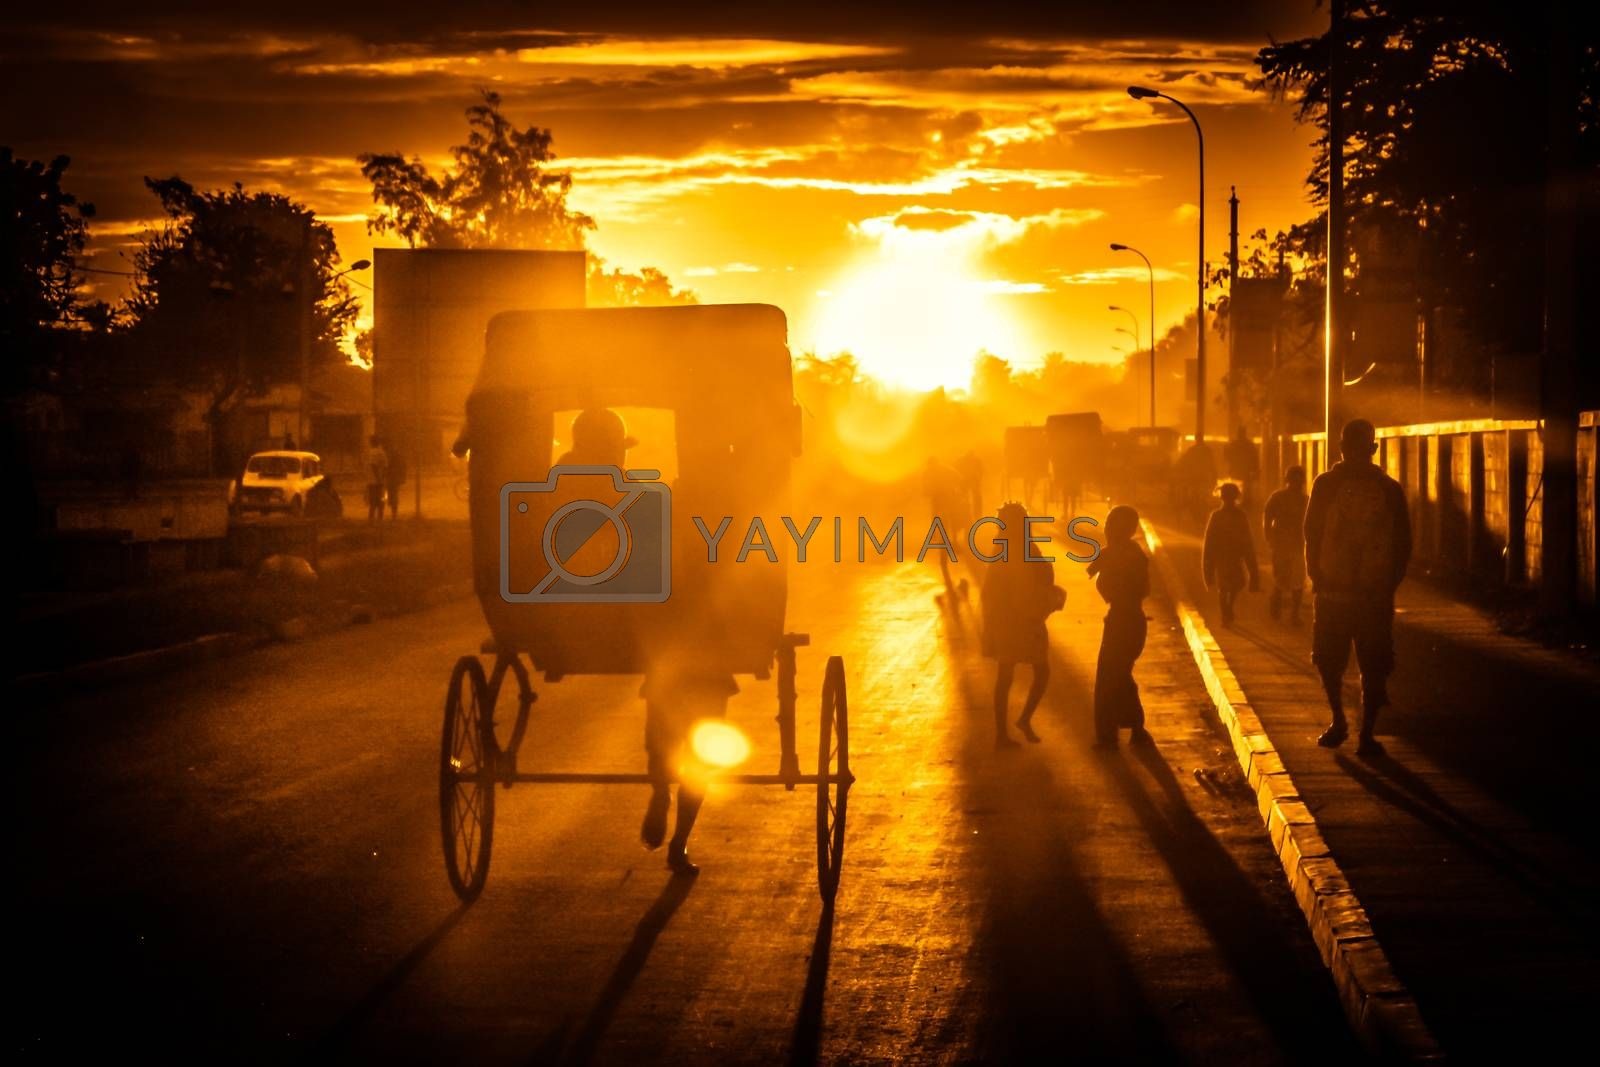 Pousse-pousse - malagasy form of transport in the cities at sunset